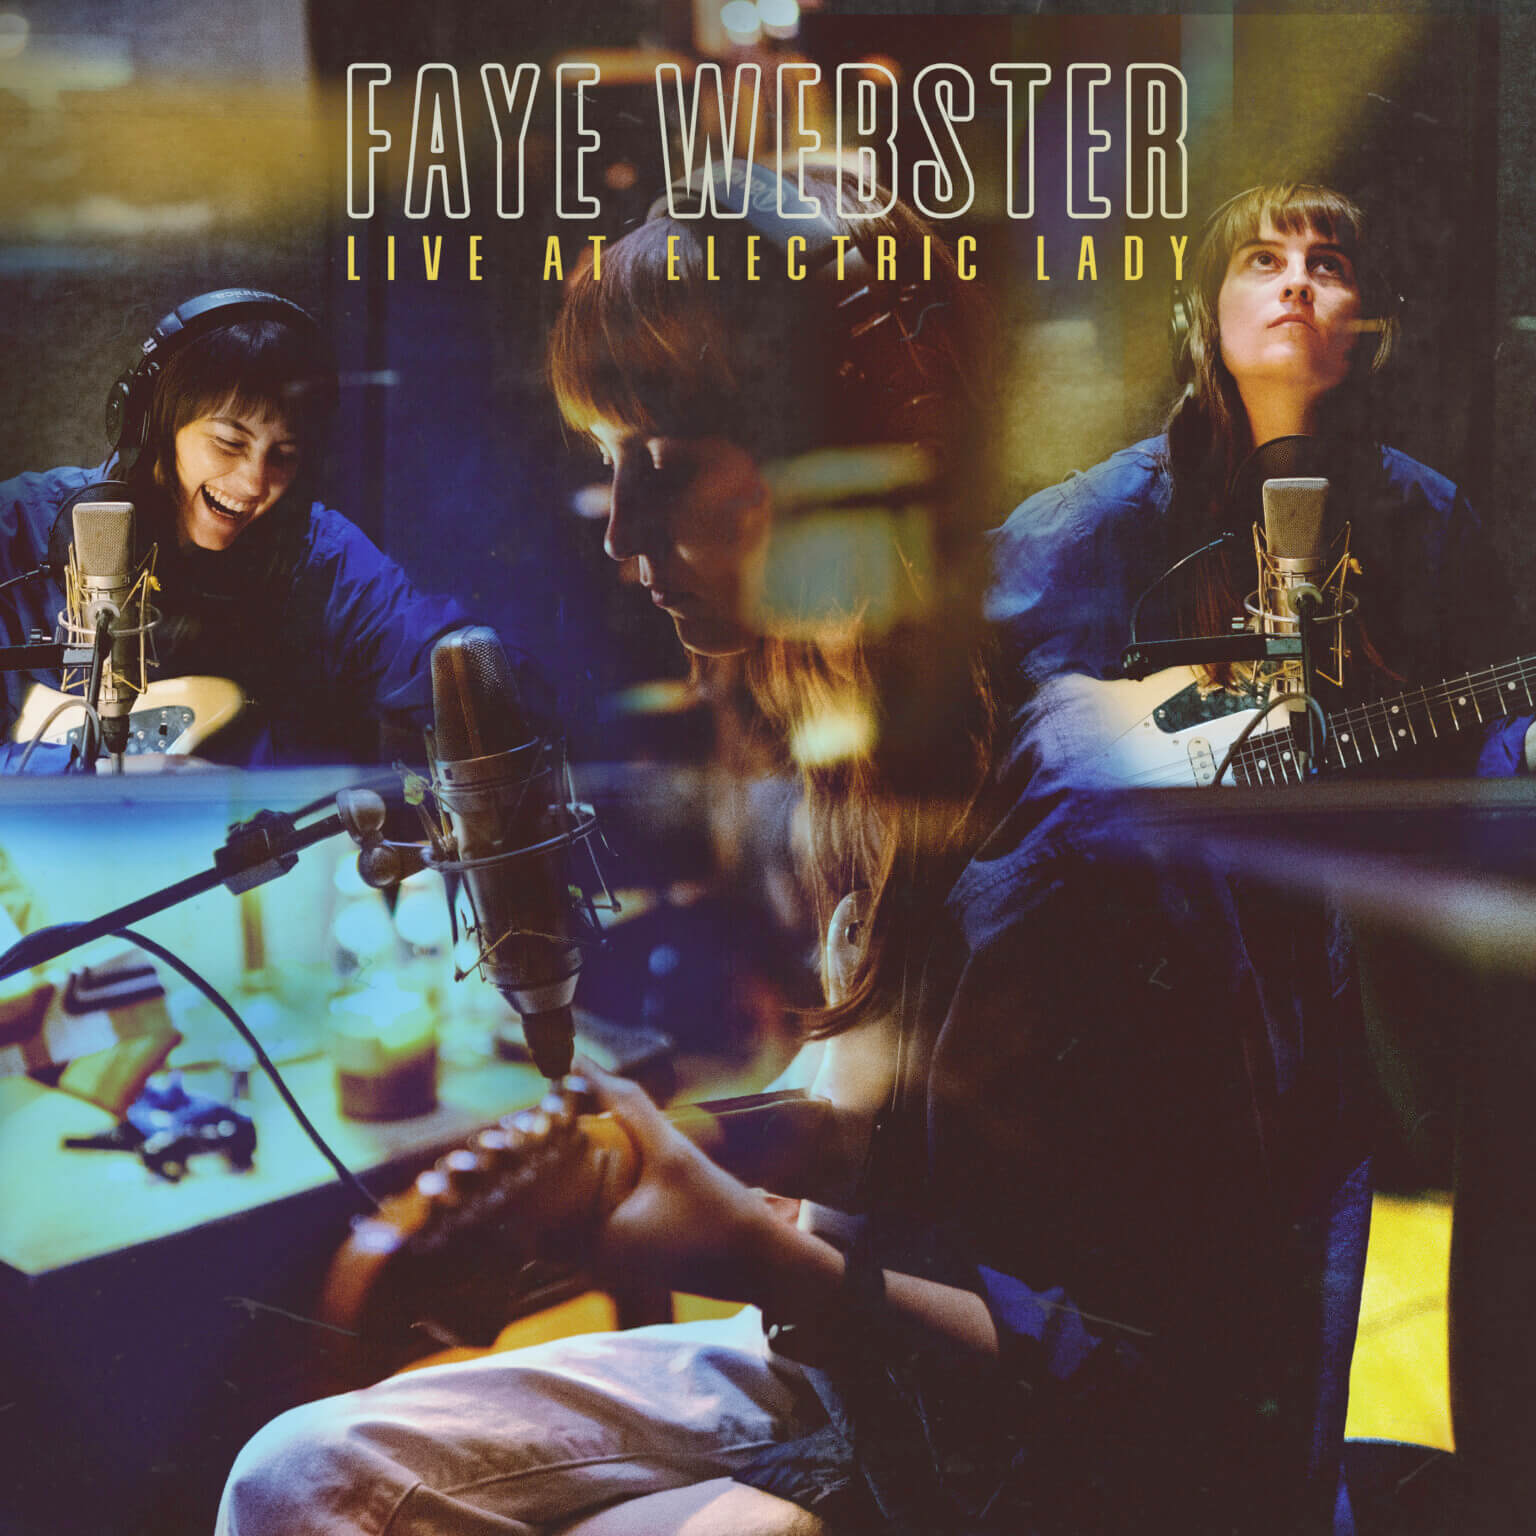 Faye Webster releases Live at Electric Lady, a live EP distributed exclusively on Spotify. The 7-song EP showcases Webster's performances